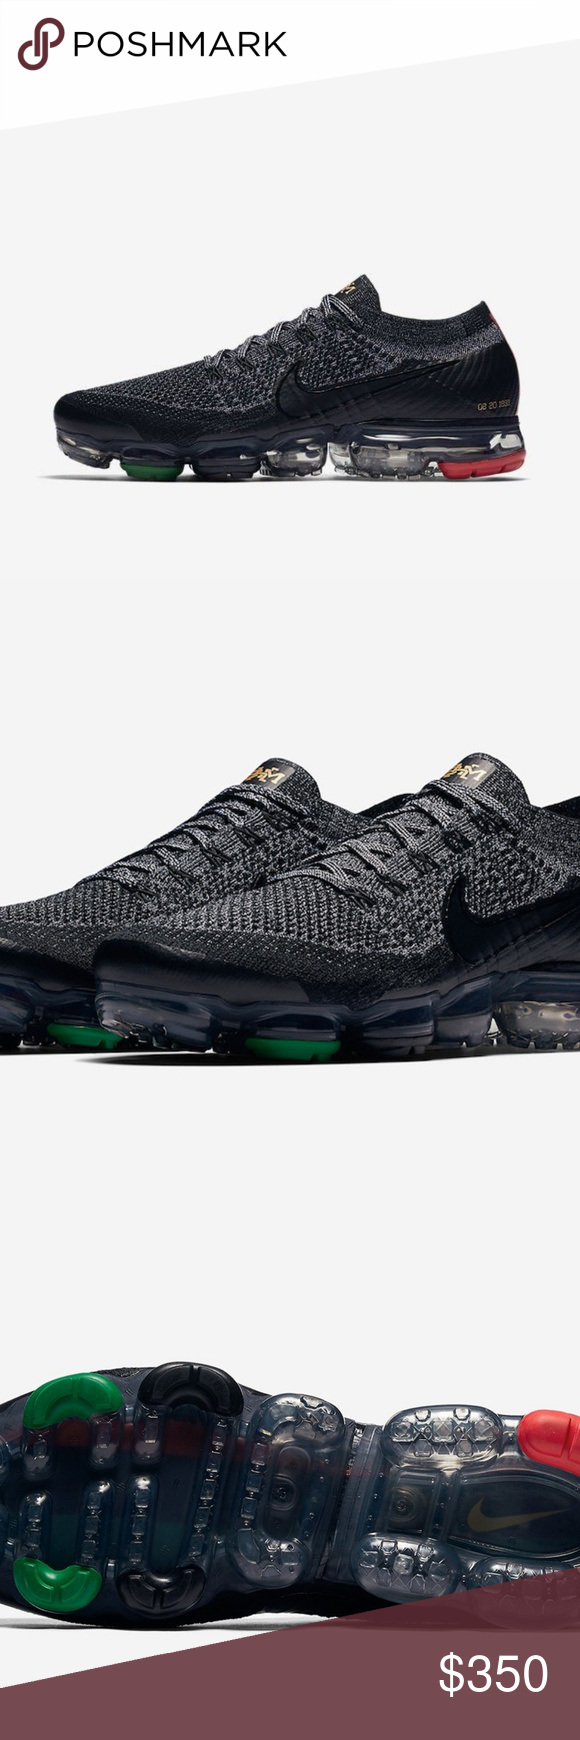 best service b9aec 651ce NEW NIKE VaporMax Black History Month Mens 10 US NEW NIKE ...